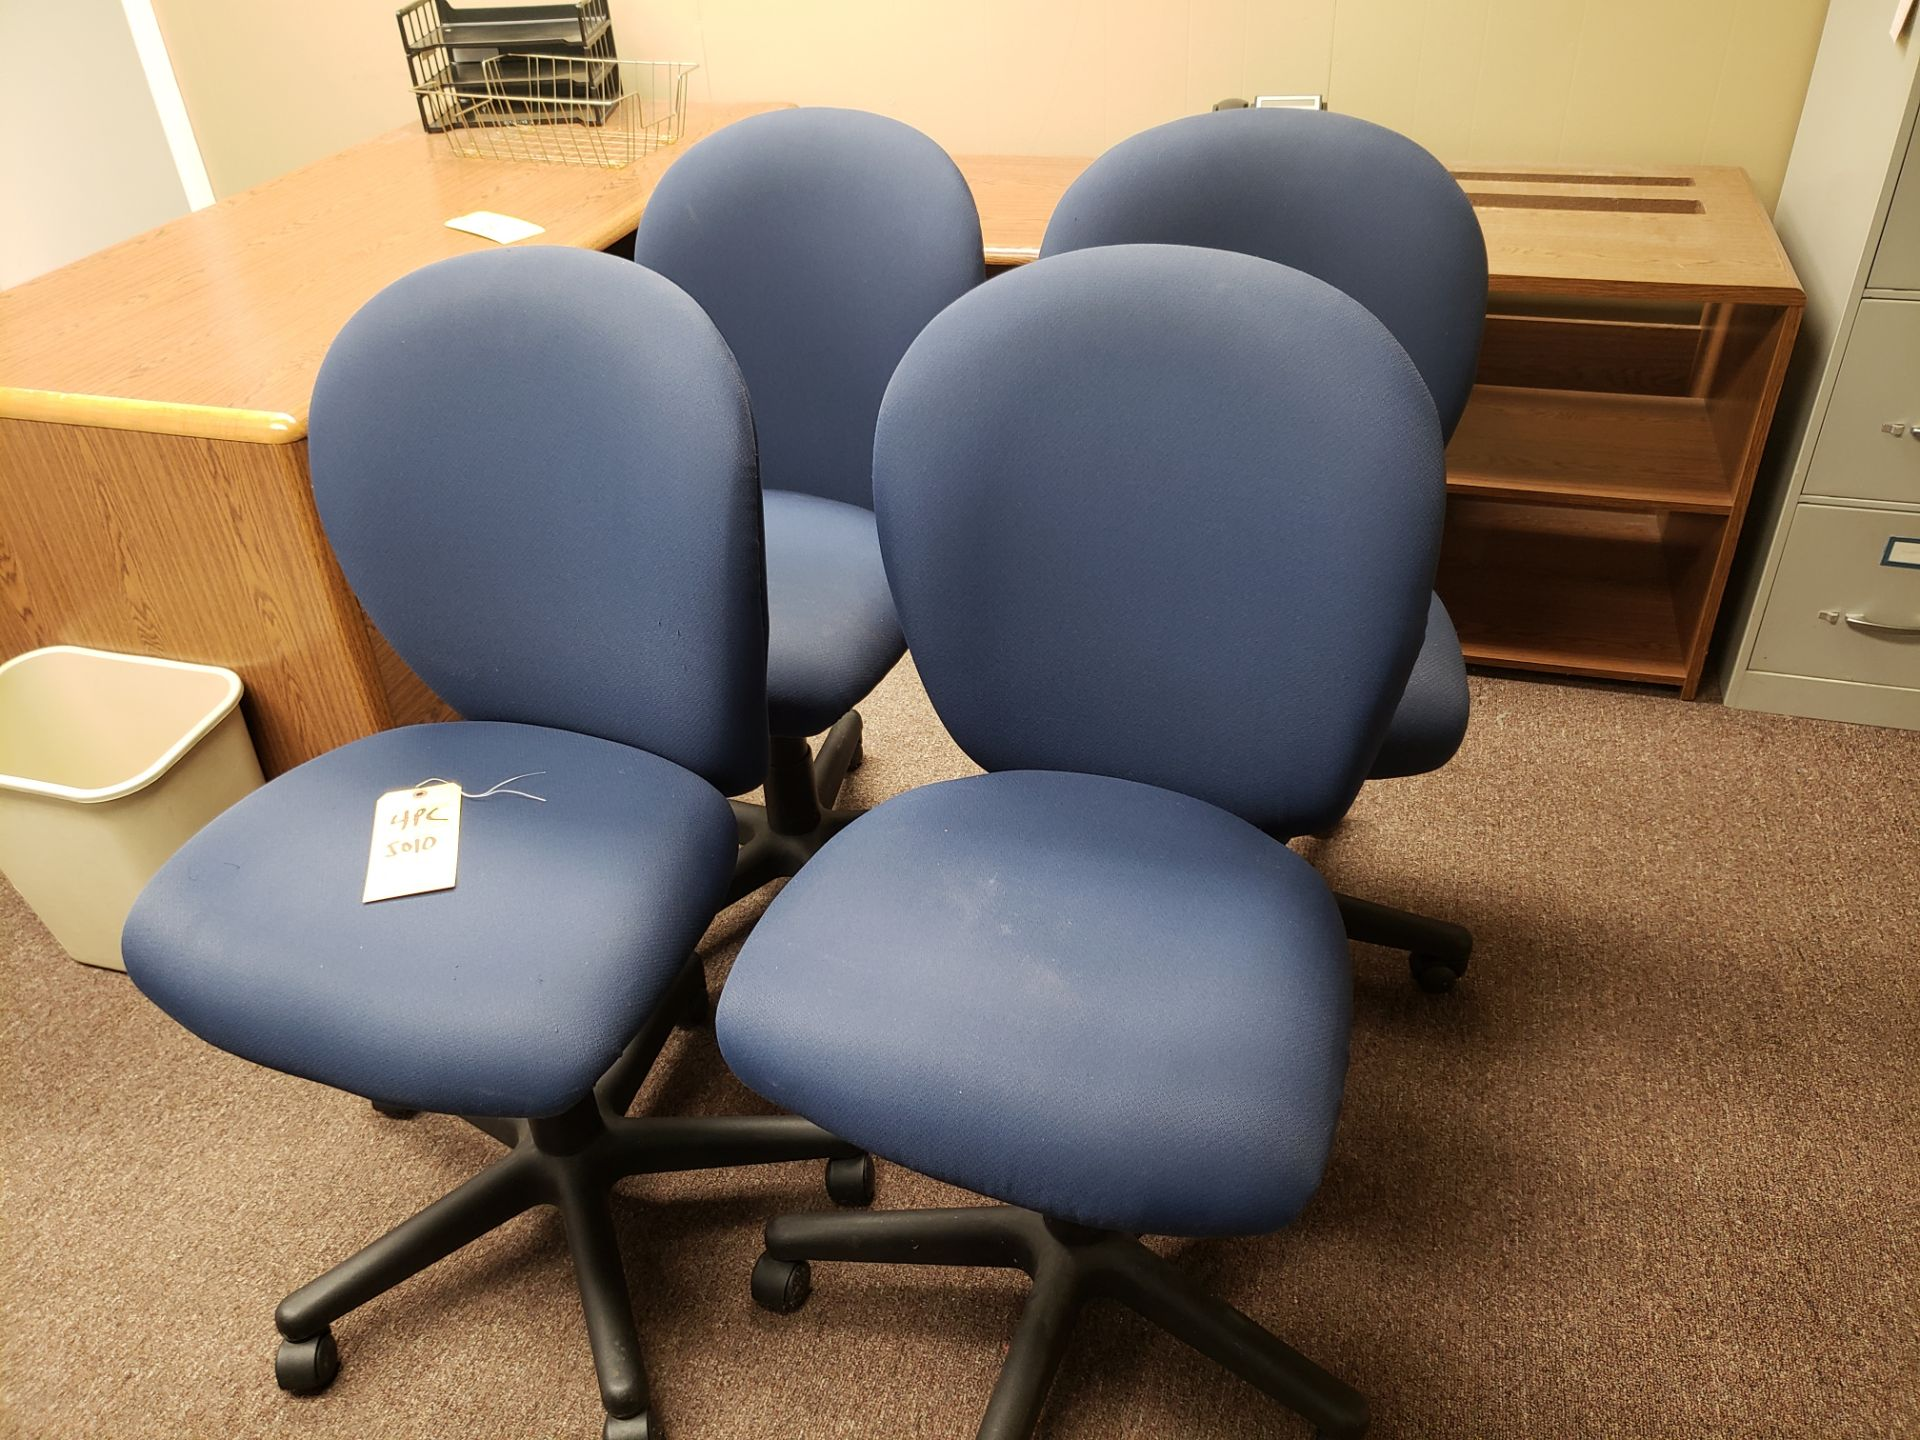 Lot 5010 - (4) OFFICE CHAIRS (LOCATED AT: 16335 LIMA ROAD BLDG. 4 HUNTERTOWN, IN 46748)